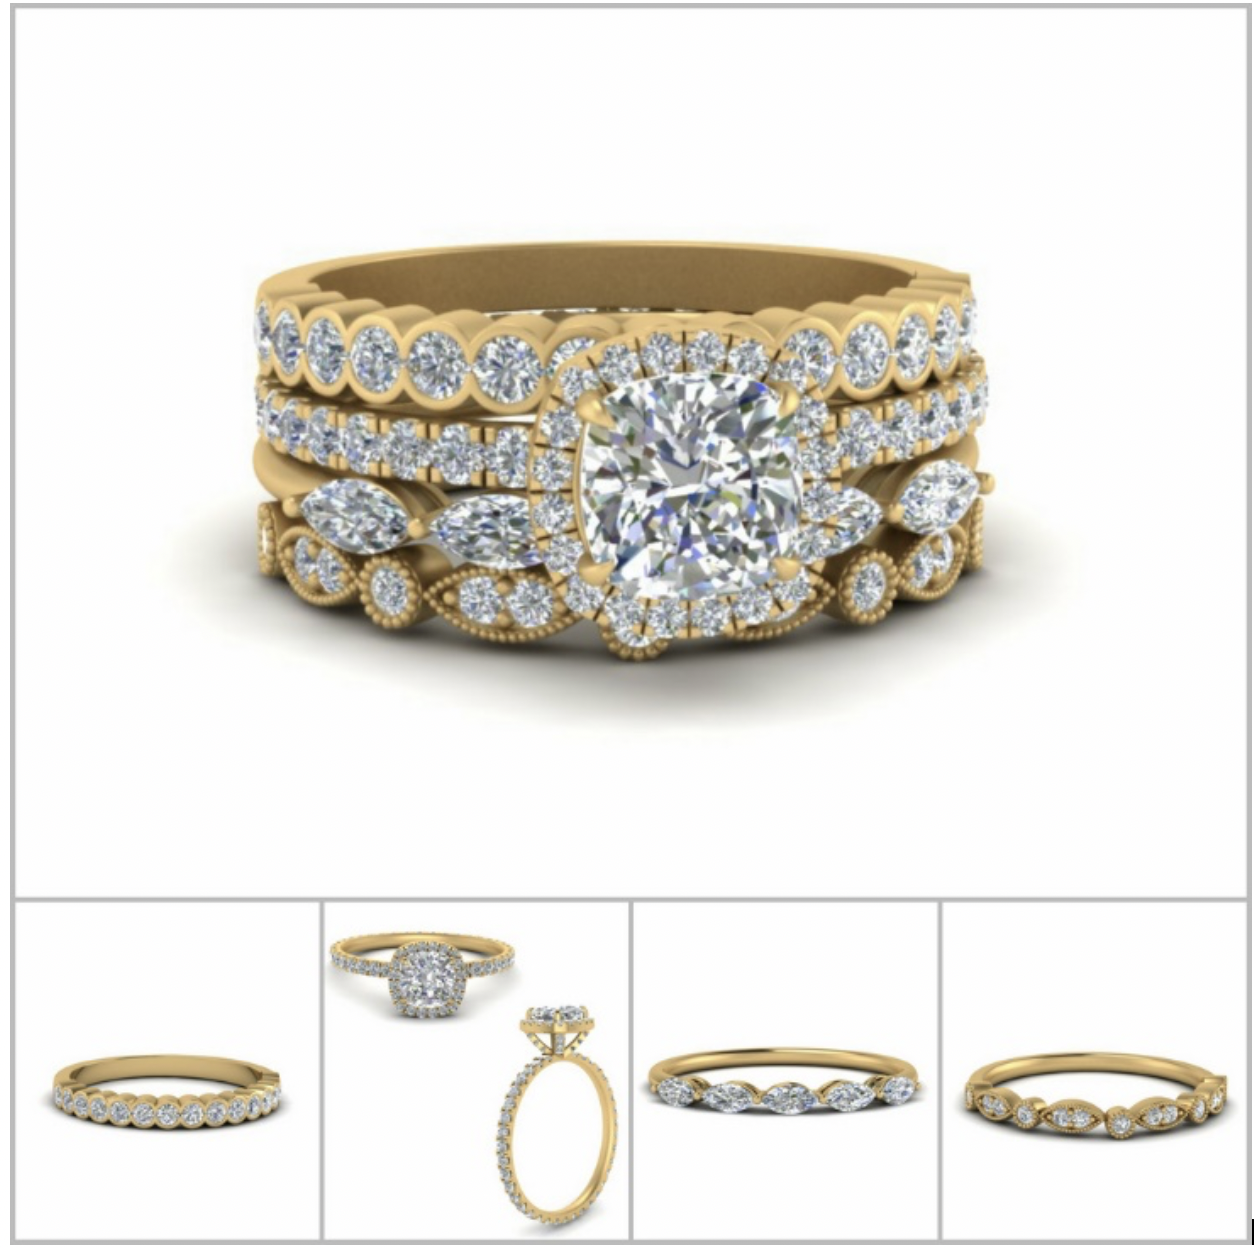 Wedding Ring Trends in 2020 2